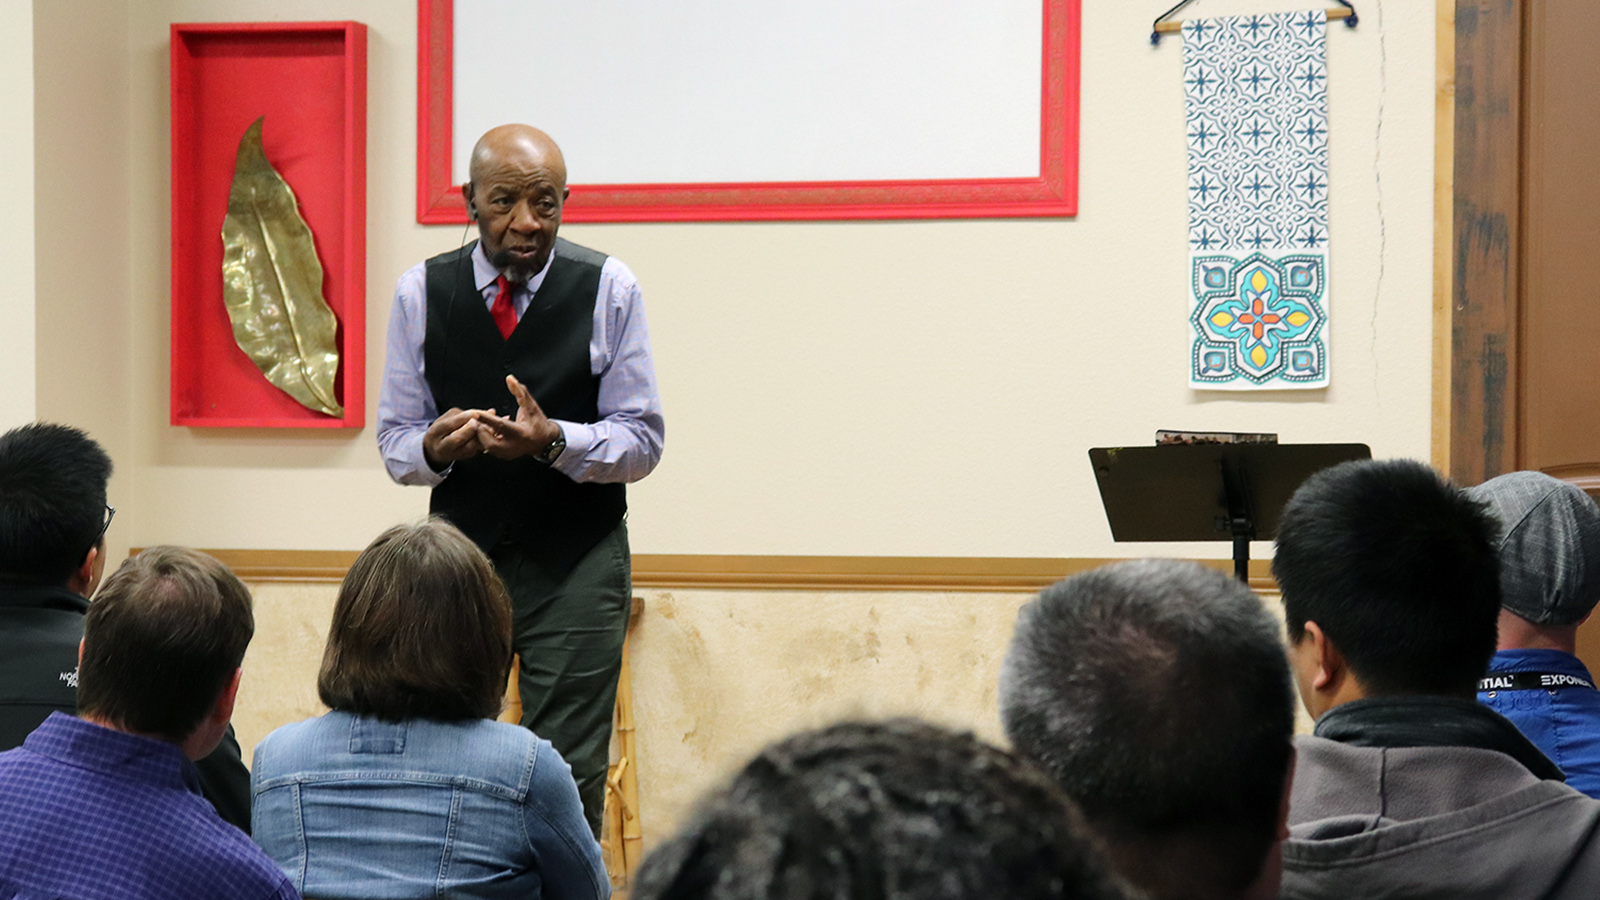 John Perkins conduct workshop at Mosaix